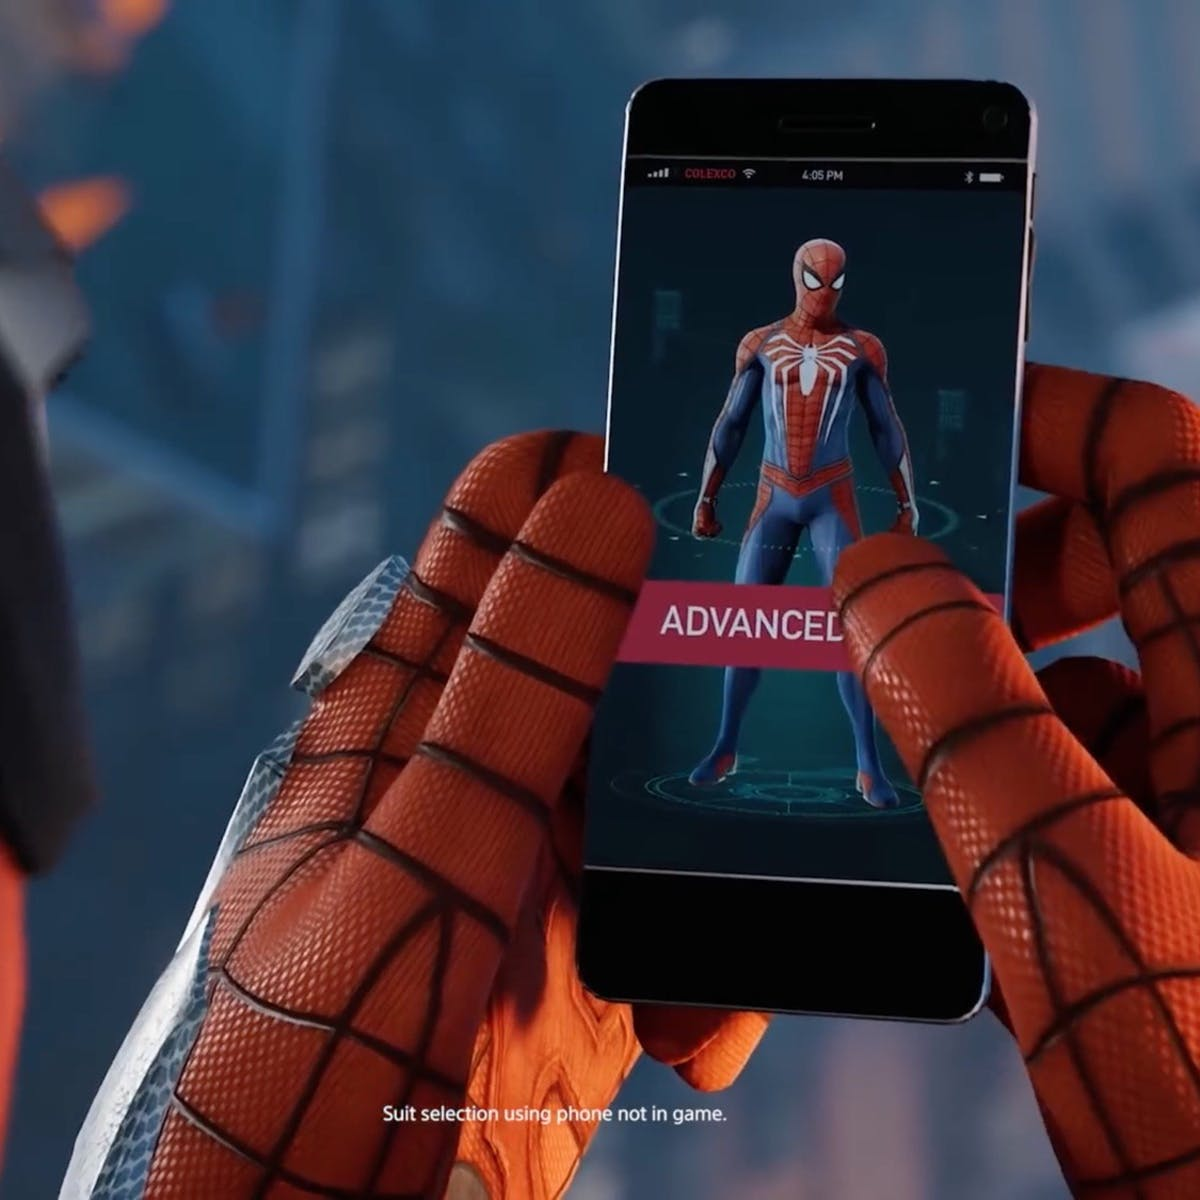 Spider-Man' PS4 Best Suit Mods: Focus on Unlocking and Using These 7